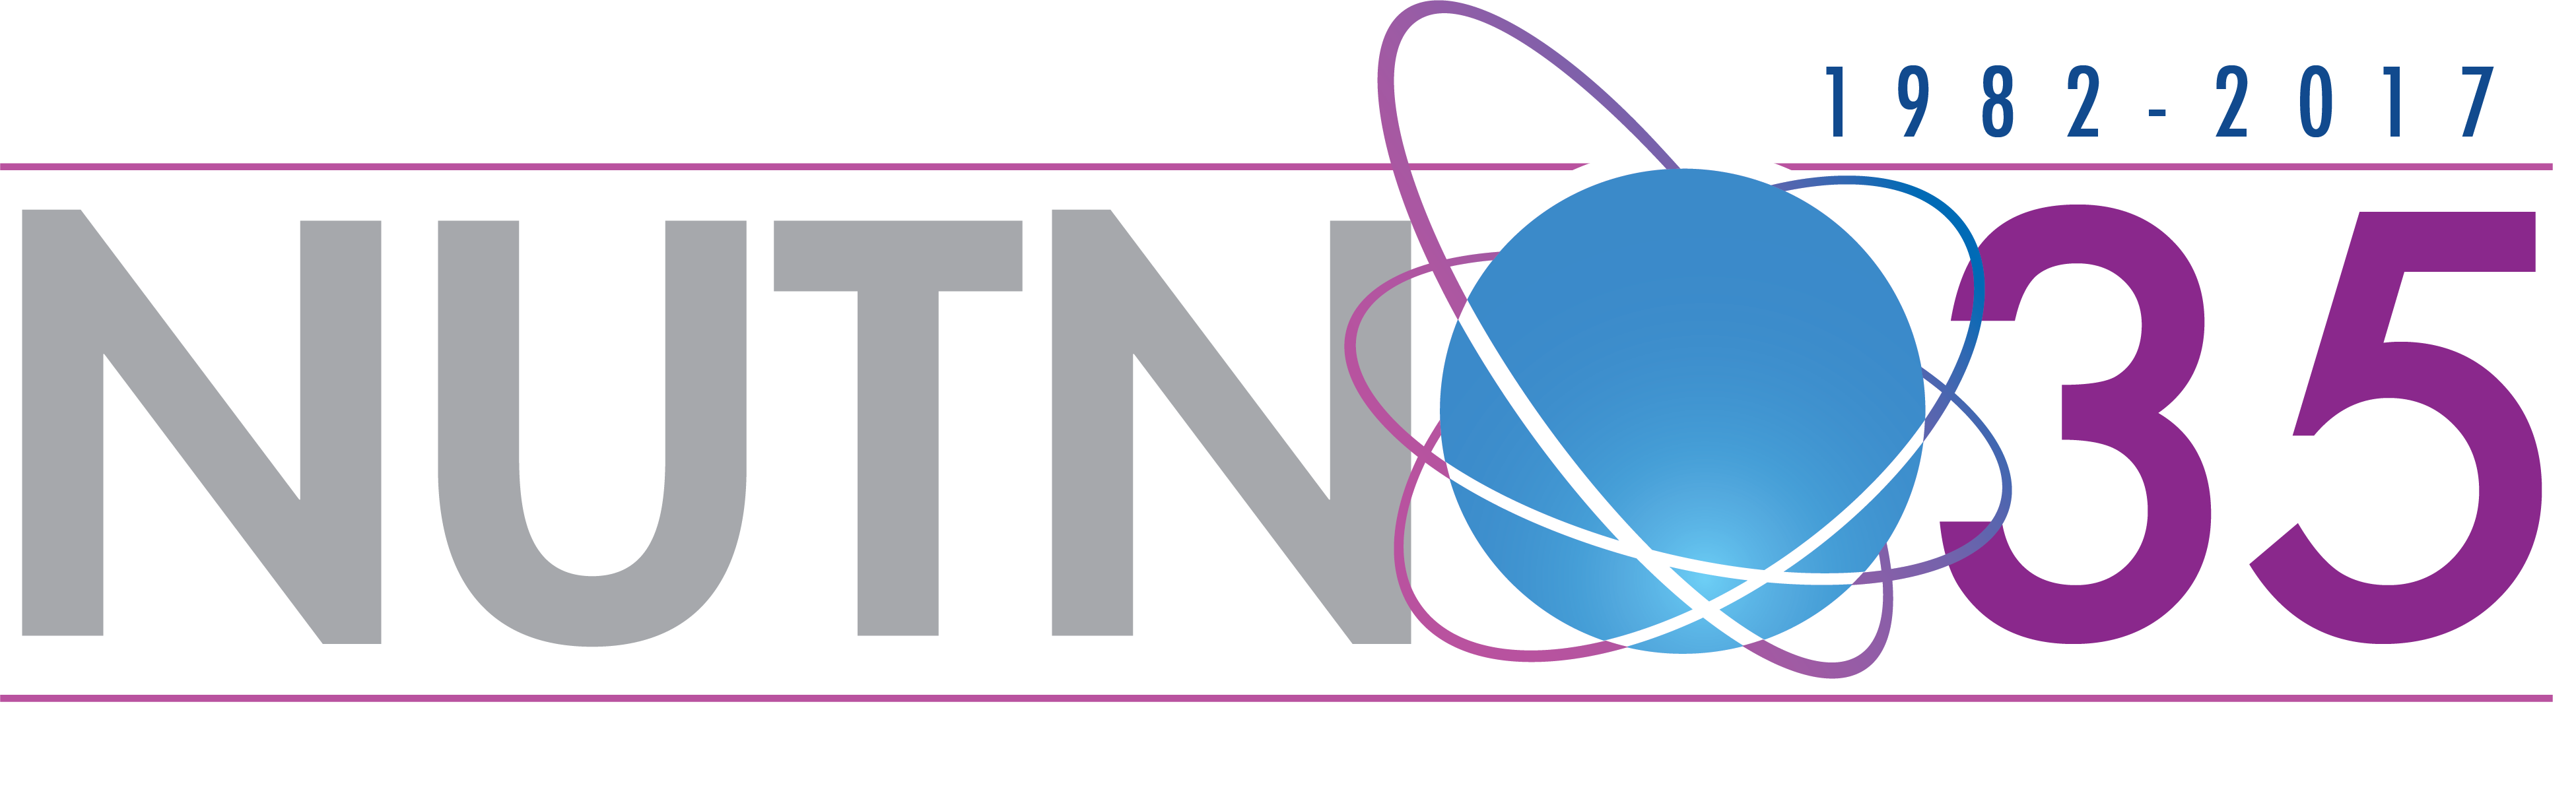 NUTN Network News Digest